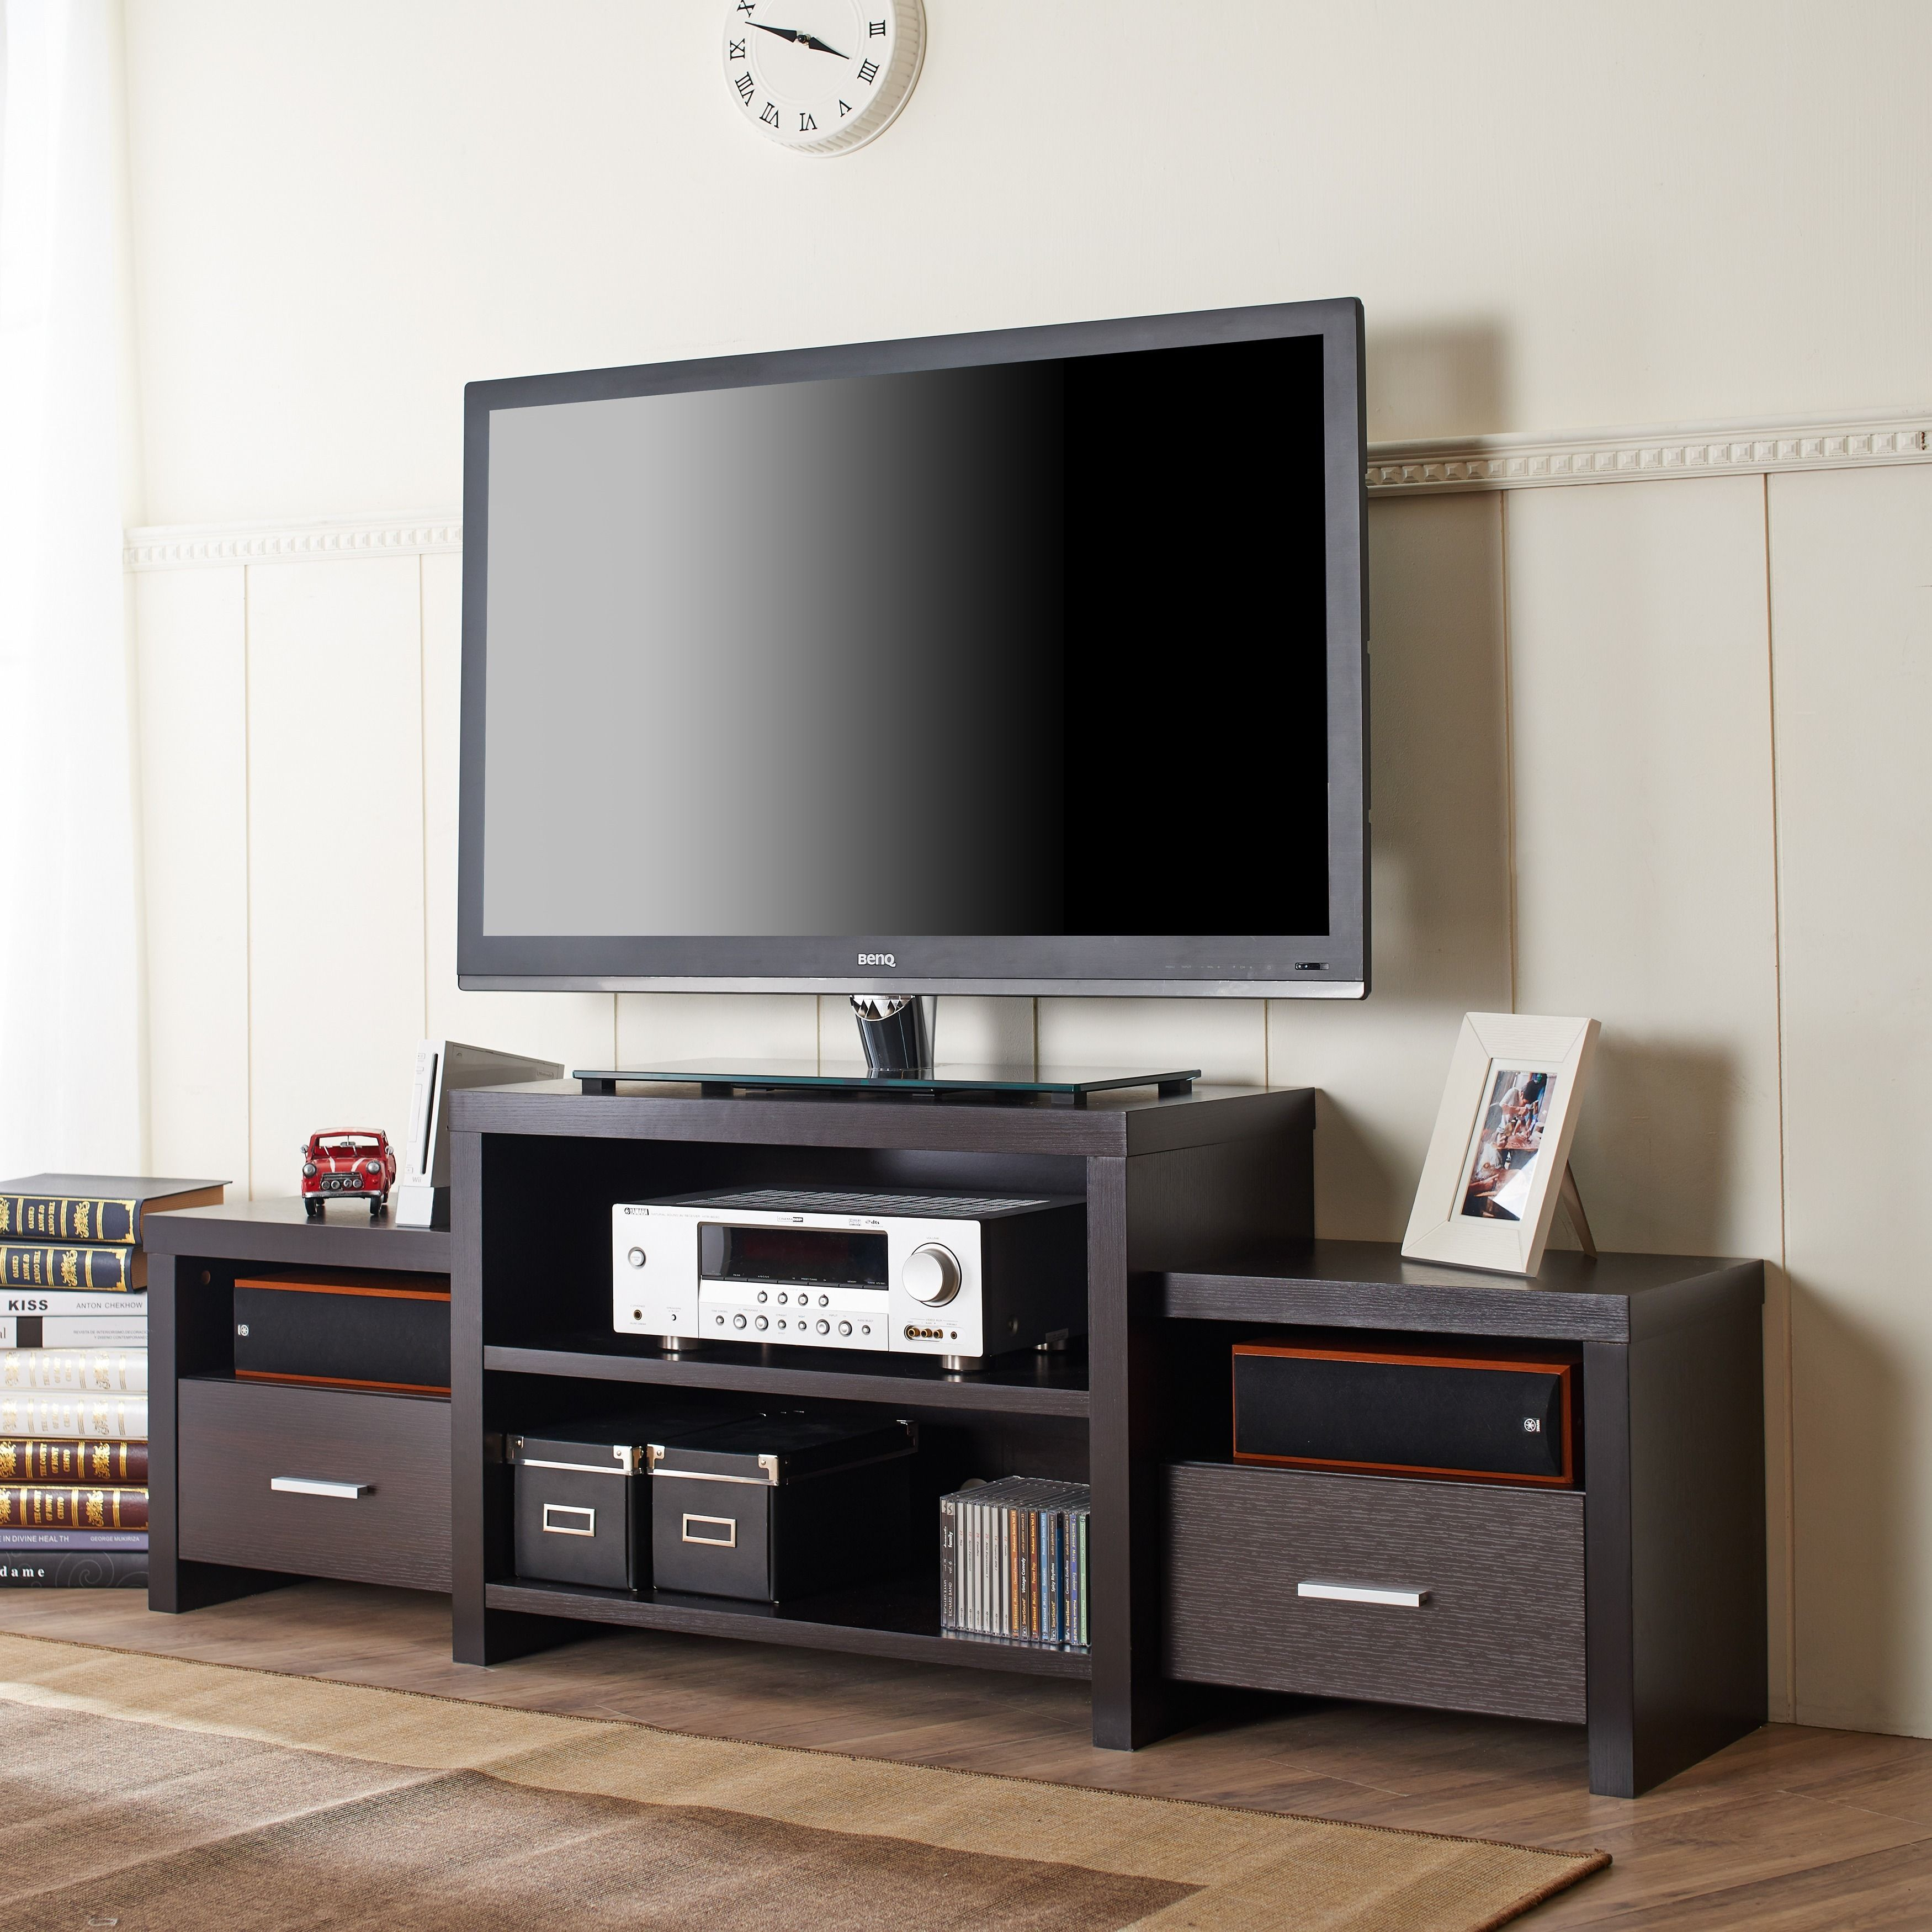 Furniture of America Brixten Tiered Cappuccino Entertainment TV Console    Overstock  Shopping   Great Deals. Furniture of America Brixten Tiered Cappuccino Entertainment TV